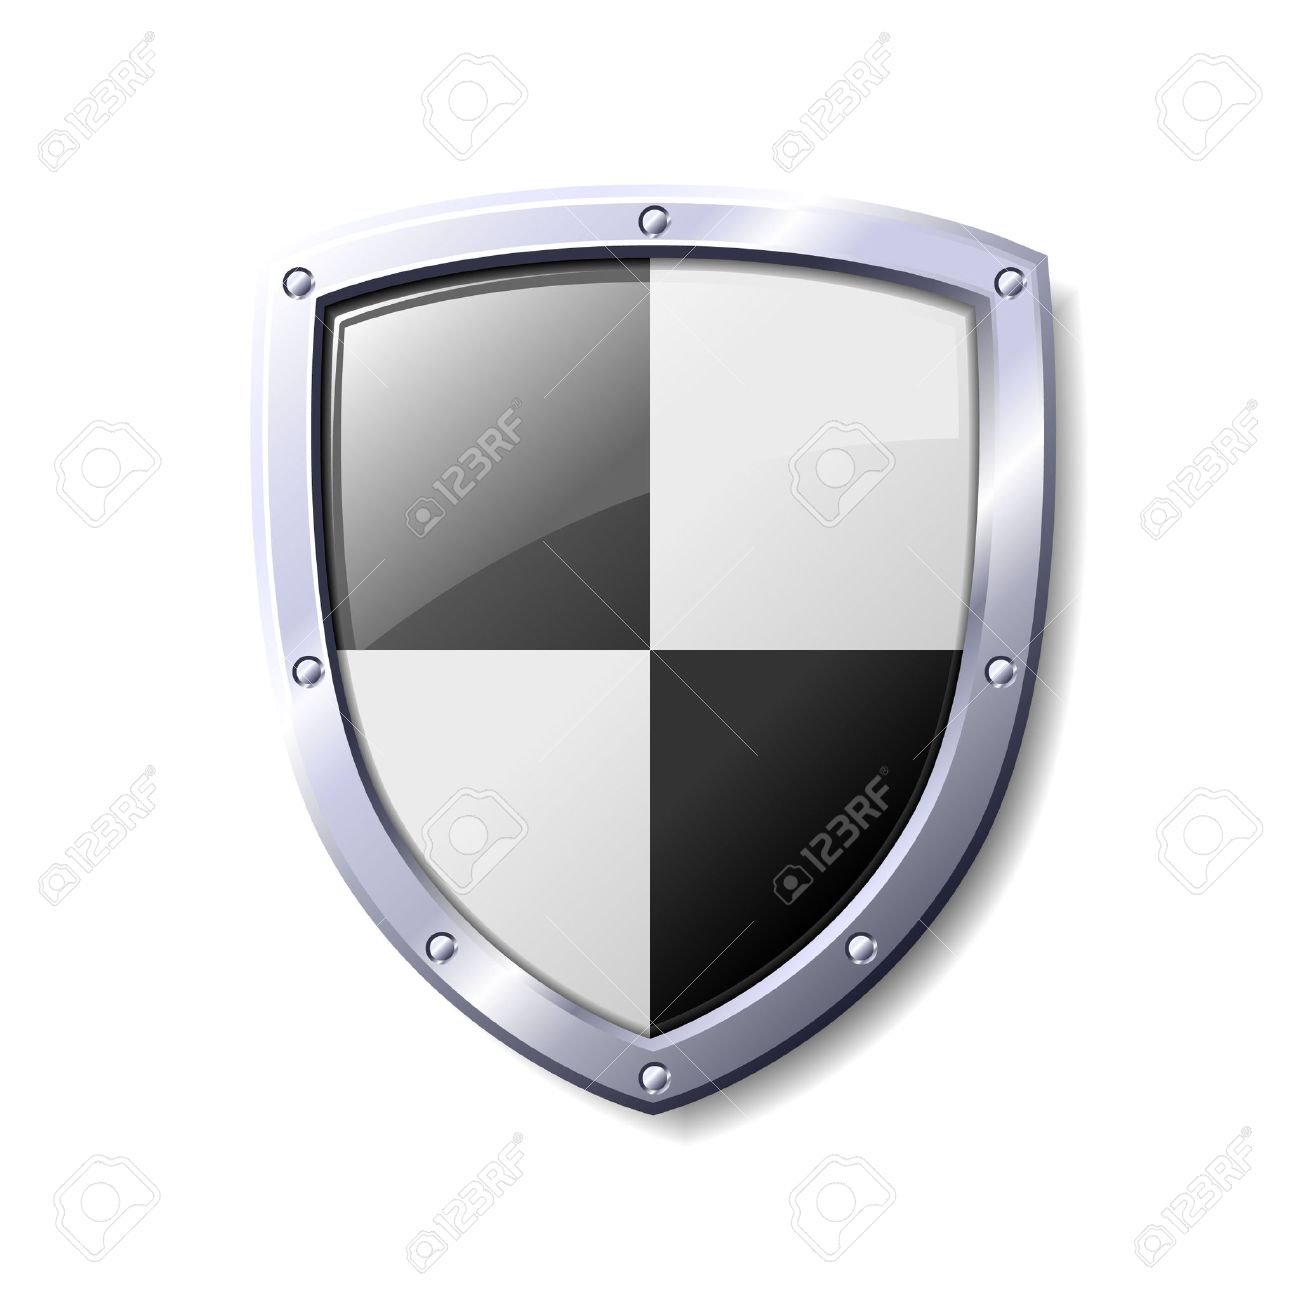 Black and white shield. Available in jpeg and eps8 formats. Stock Vector - 5535502